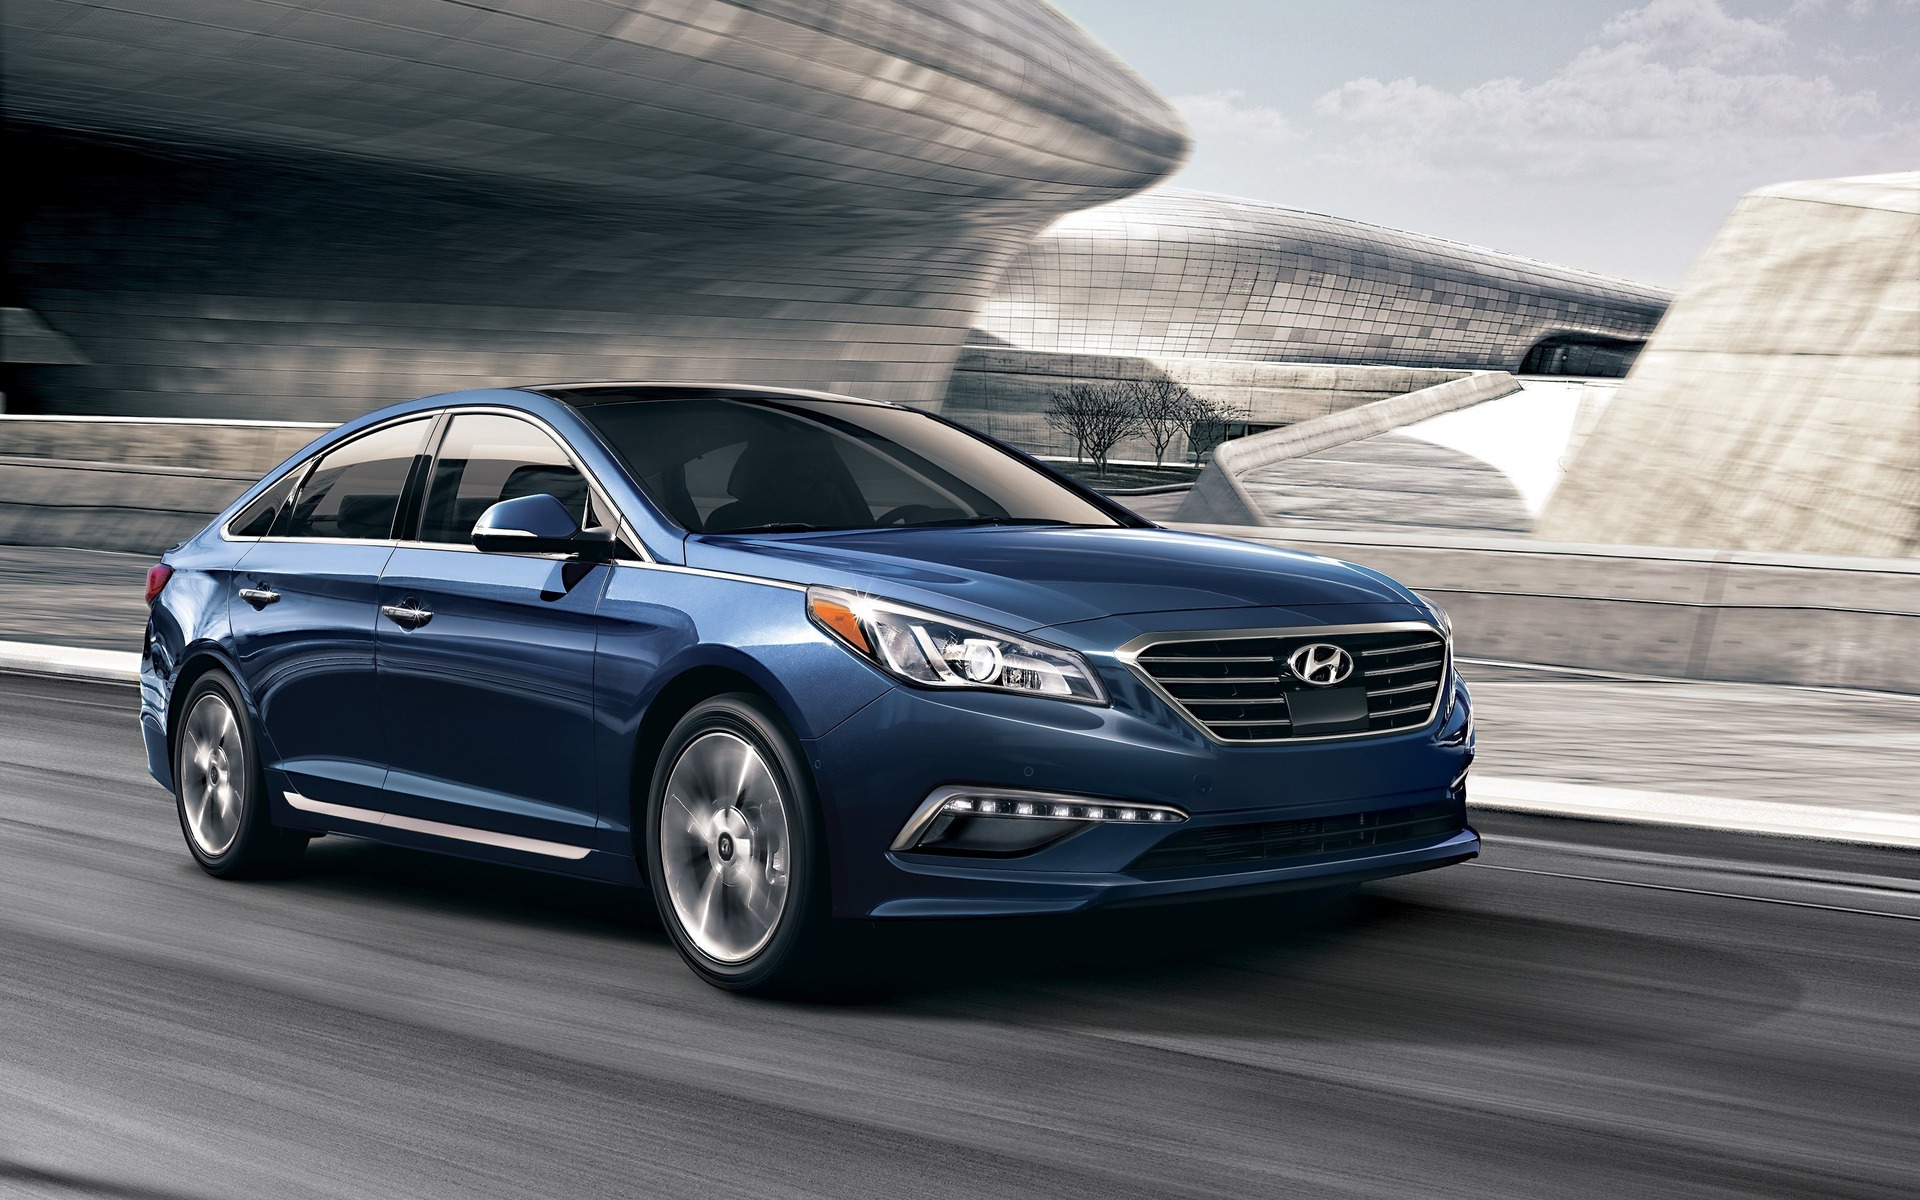 2017 Hyundai Sonata News Reviews Picture Galleries And Videos The Car Guide